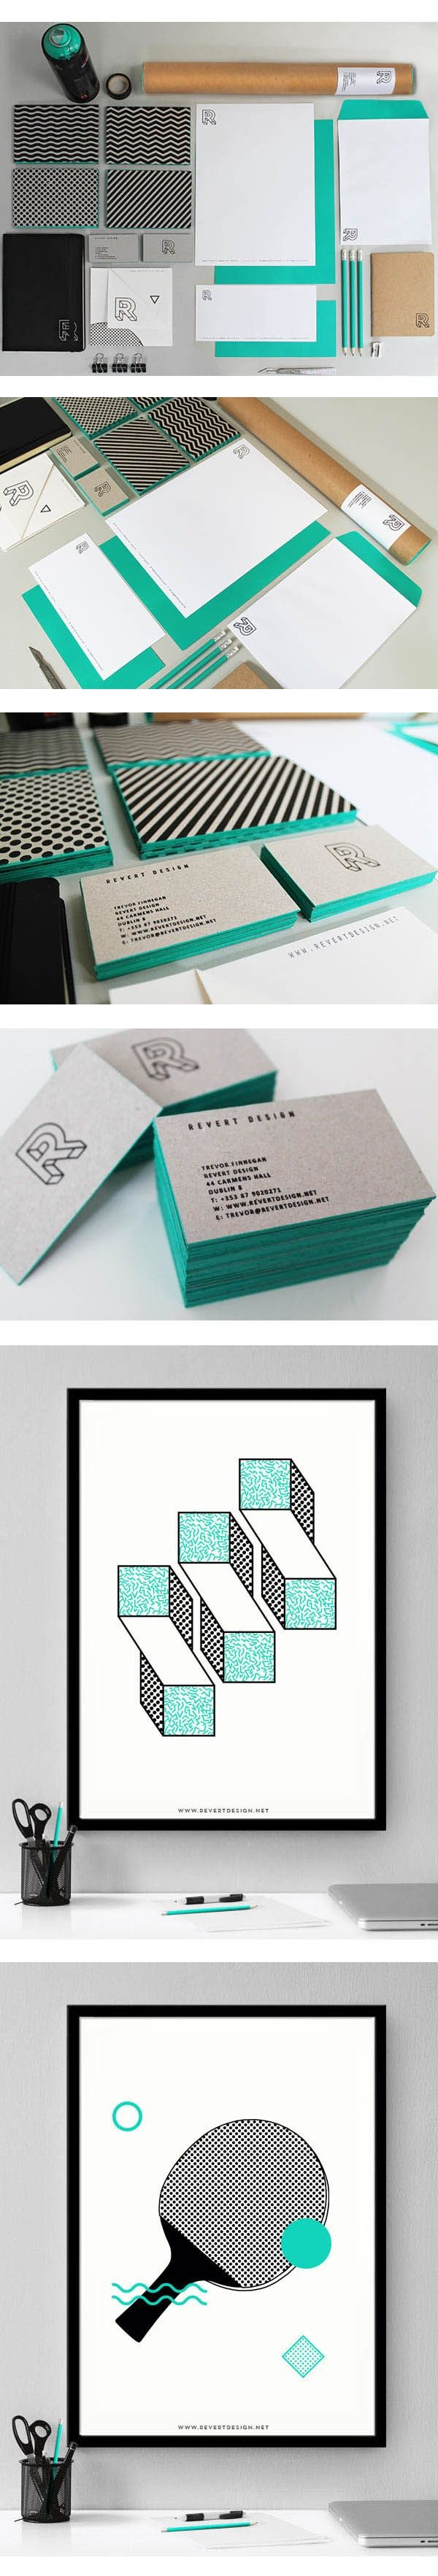 Stay Creative blog | 15 creative branding and identity project | http://staycreativeblog.com